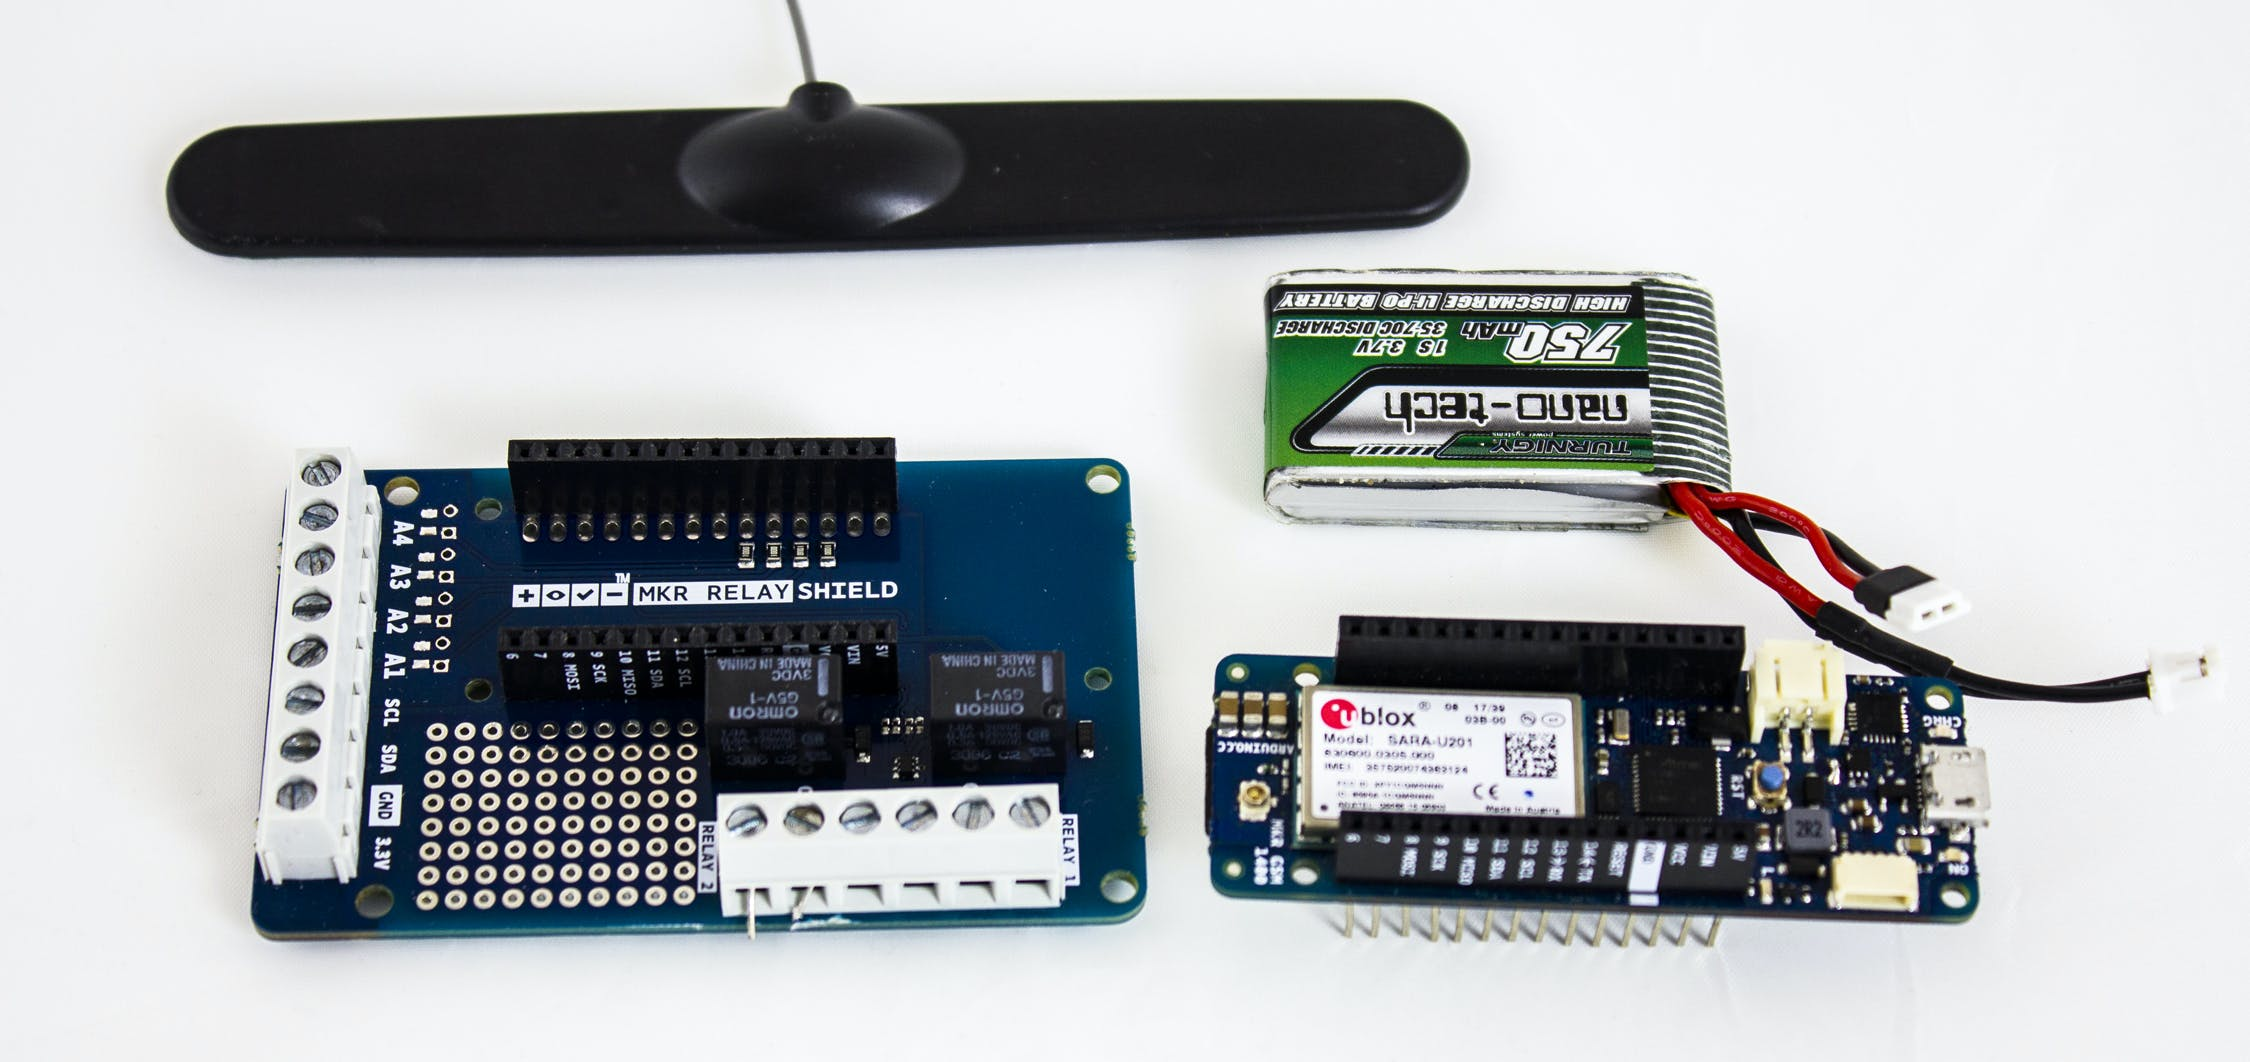 Arduino MKR GSM 1400, MKR Relay Protoshield, LiPo battery and Antenna